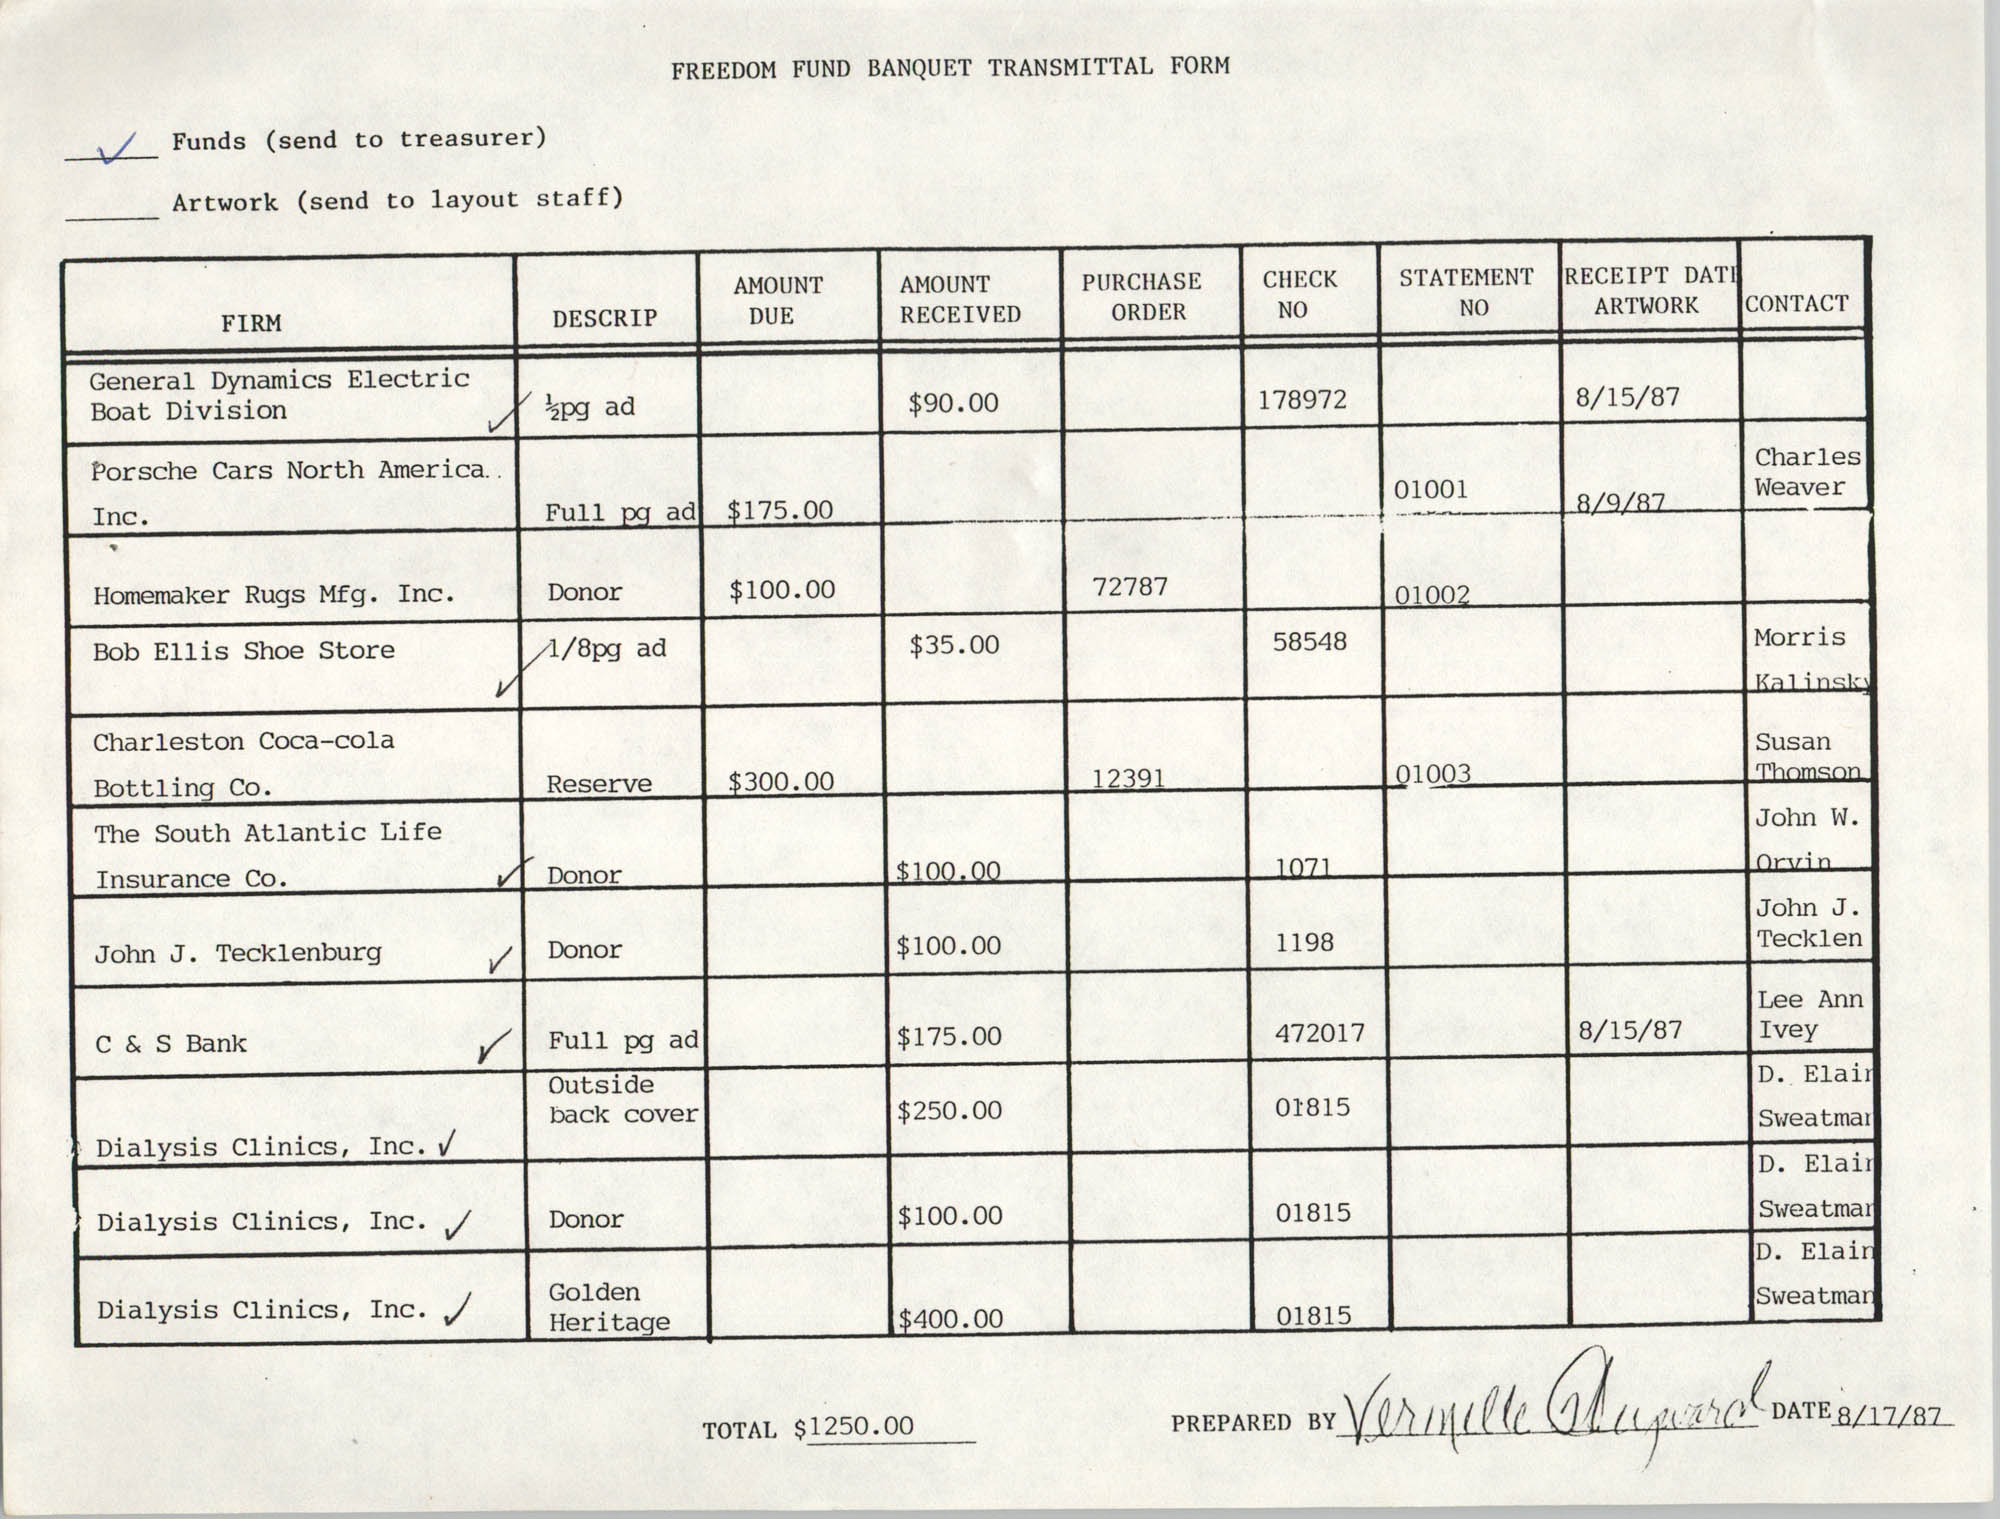 Freedom Fund Banquet Transmittal Forms, August 17, 1987, Page 4